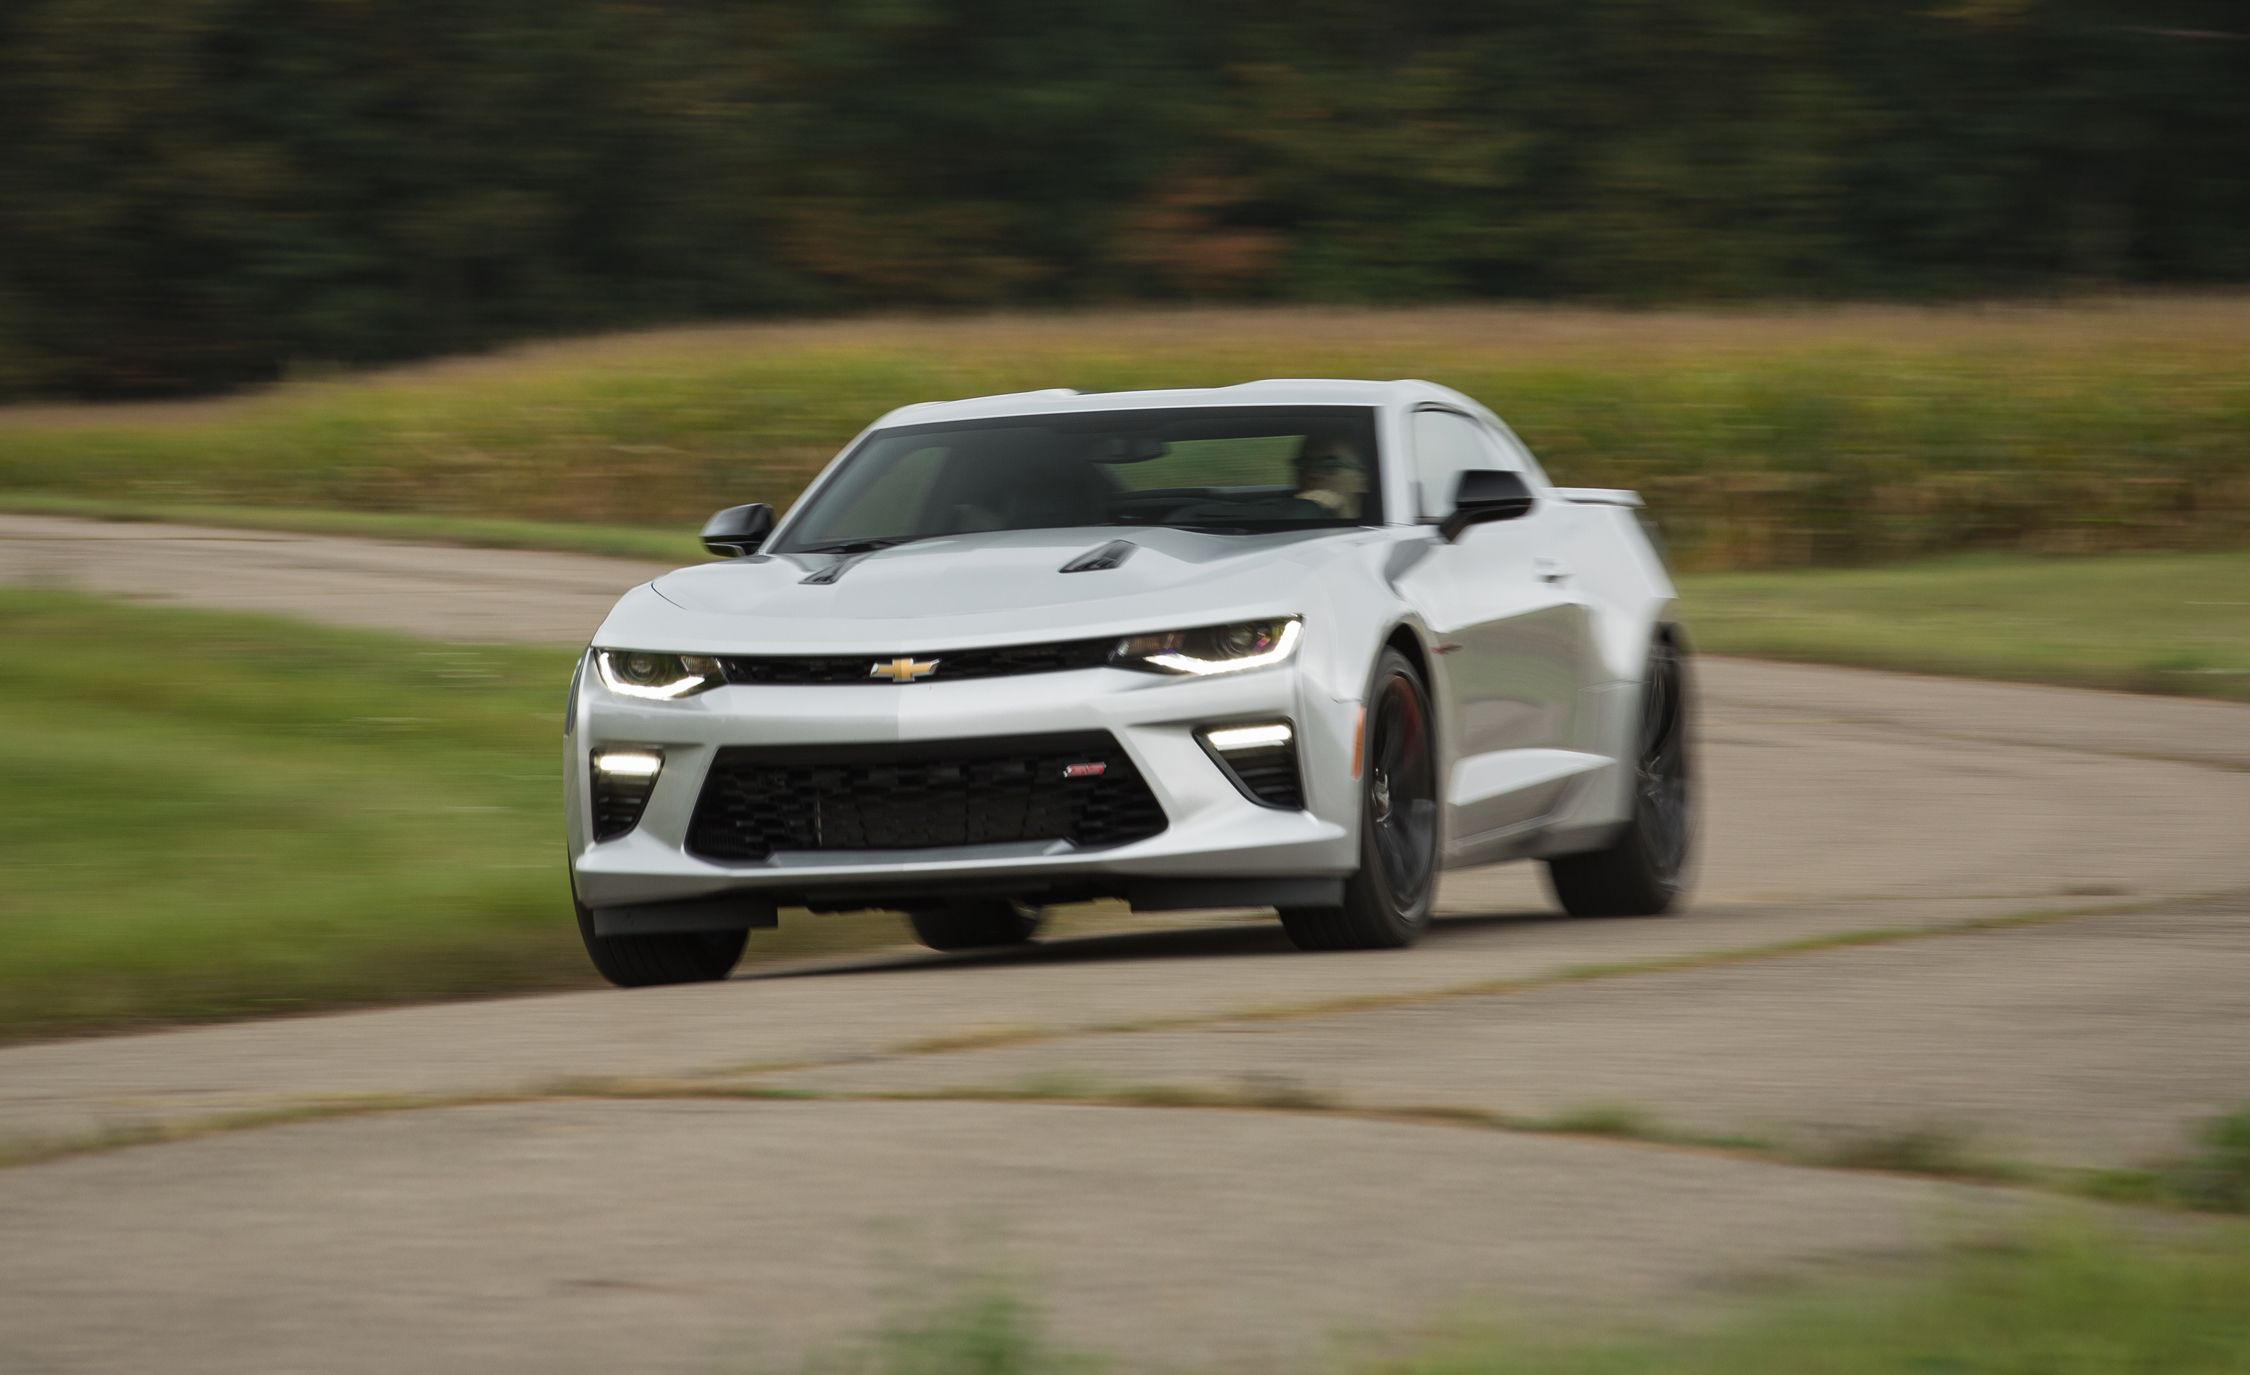 Dodge Charger Hellcat Price >> Chevrolet Camaro Reviews | Chevrolet Camaro Price, Photos, and Specs | Car and Driver